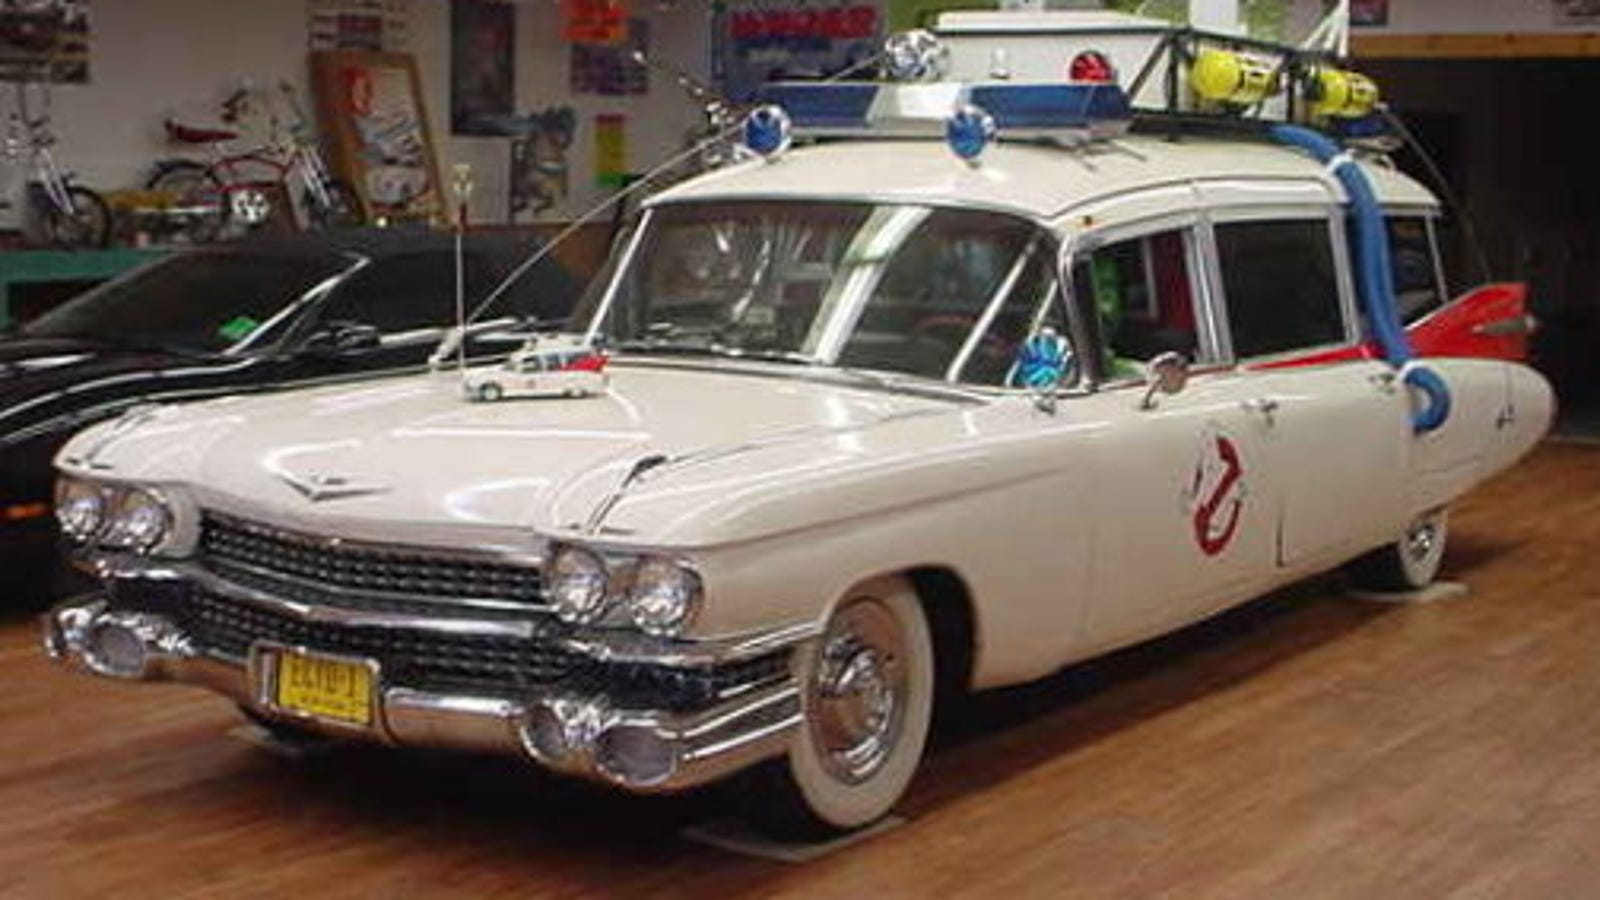 ghostbuster 39 s ecto 1 for sale high miles some slime damage. Black Bedroom Furniture Sets. Home Design Ideas